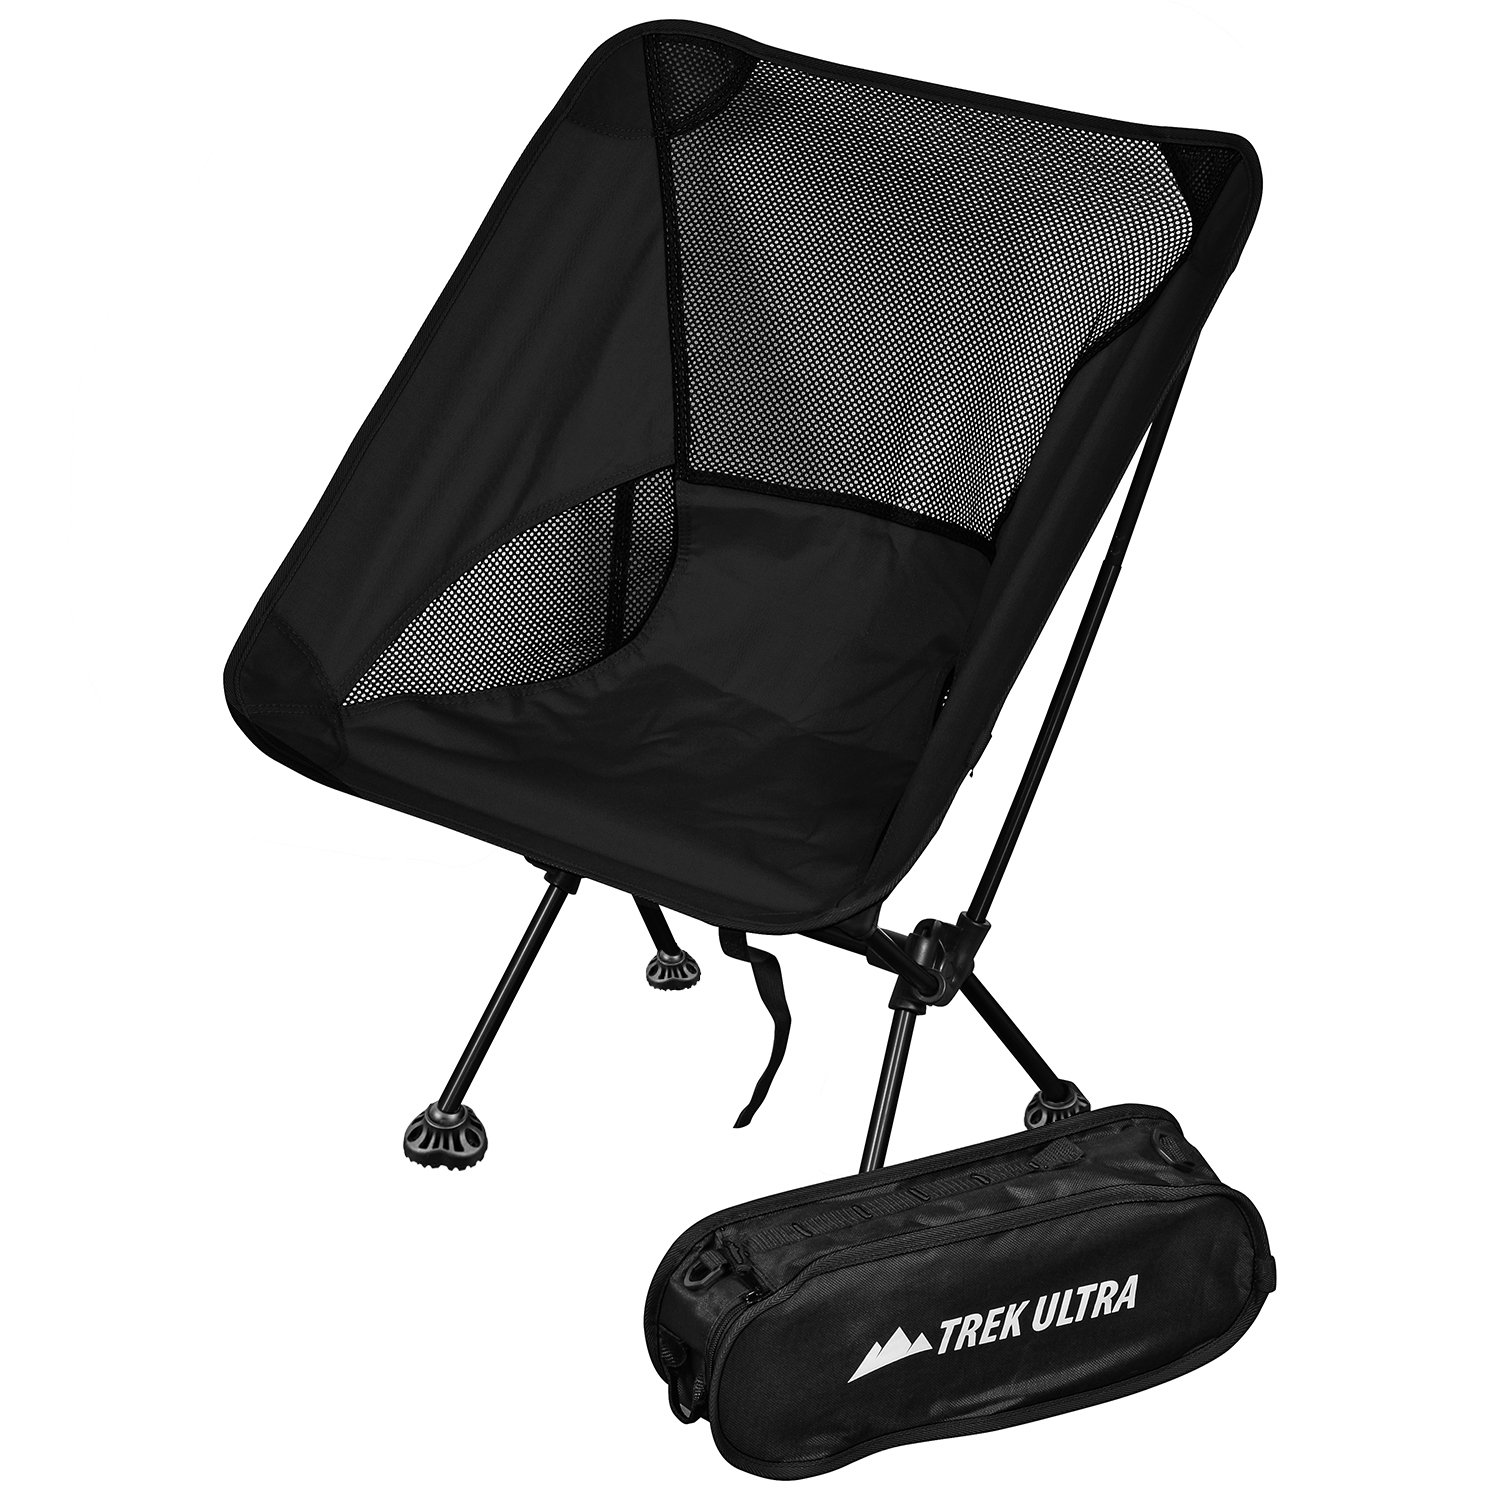 Amazon TrekUltra Camping Fold Up Chairs with Bag Portable